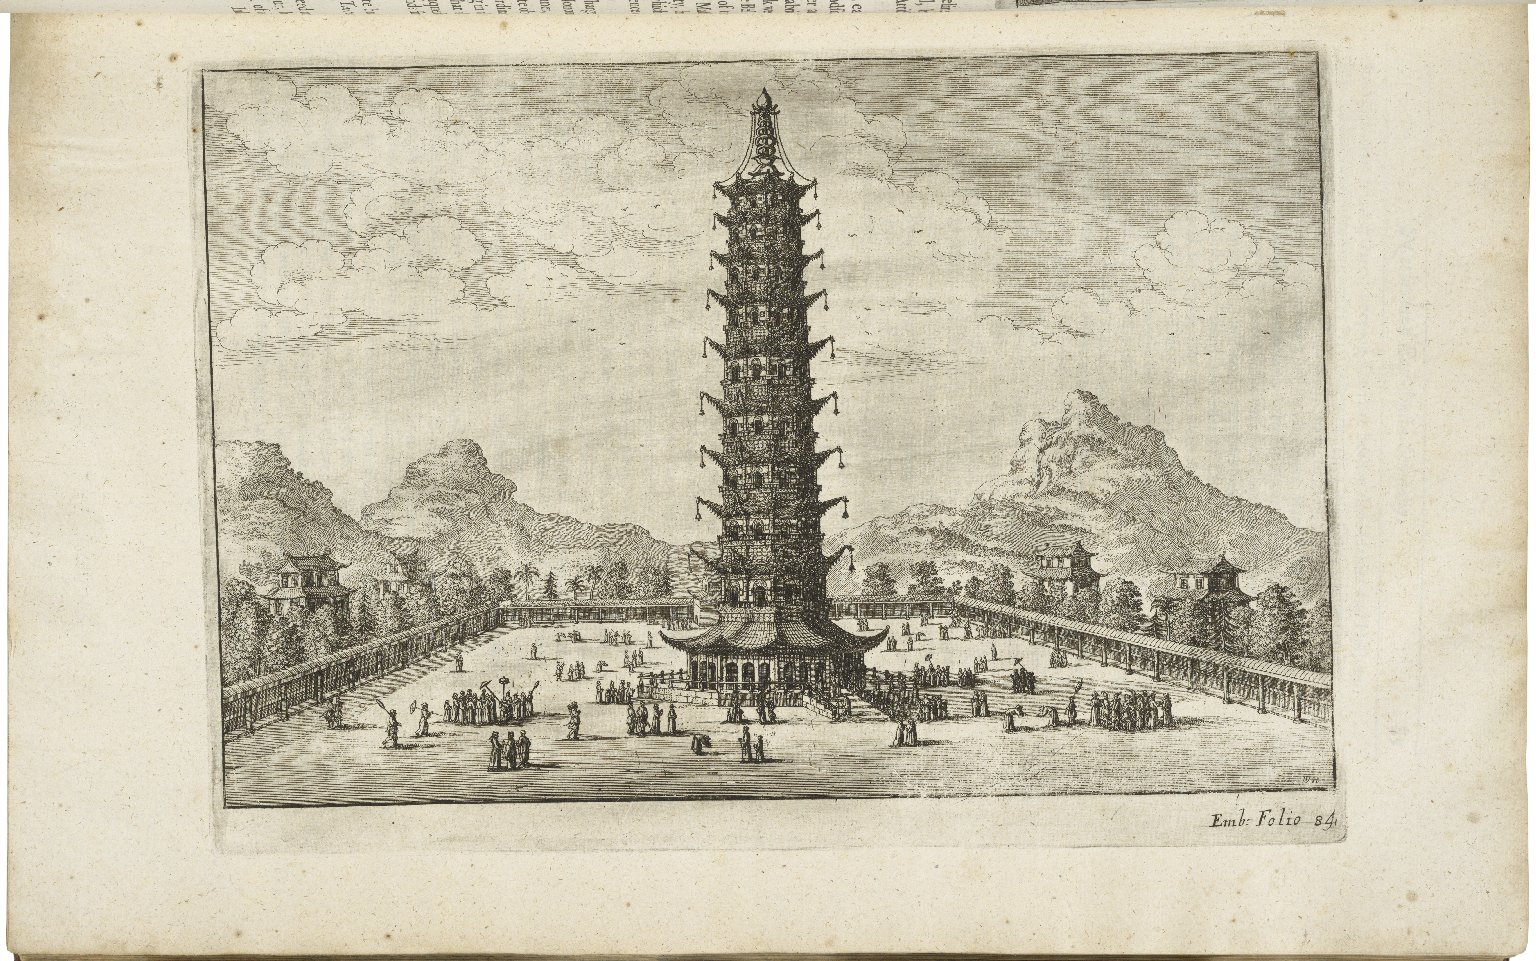 [Gezantschap der Neerlandtsche Oost-Indische Compagnie aan den grooten Tartarischen Cham, den tegenwoordigen keizer van China. English] An embassy from the East-India Company of the United Provinces, to the Grand Tartar Cham Emperor of China ...